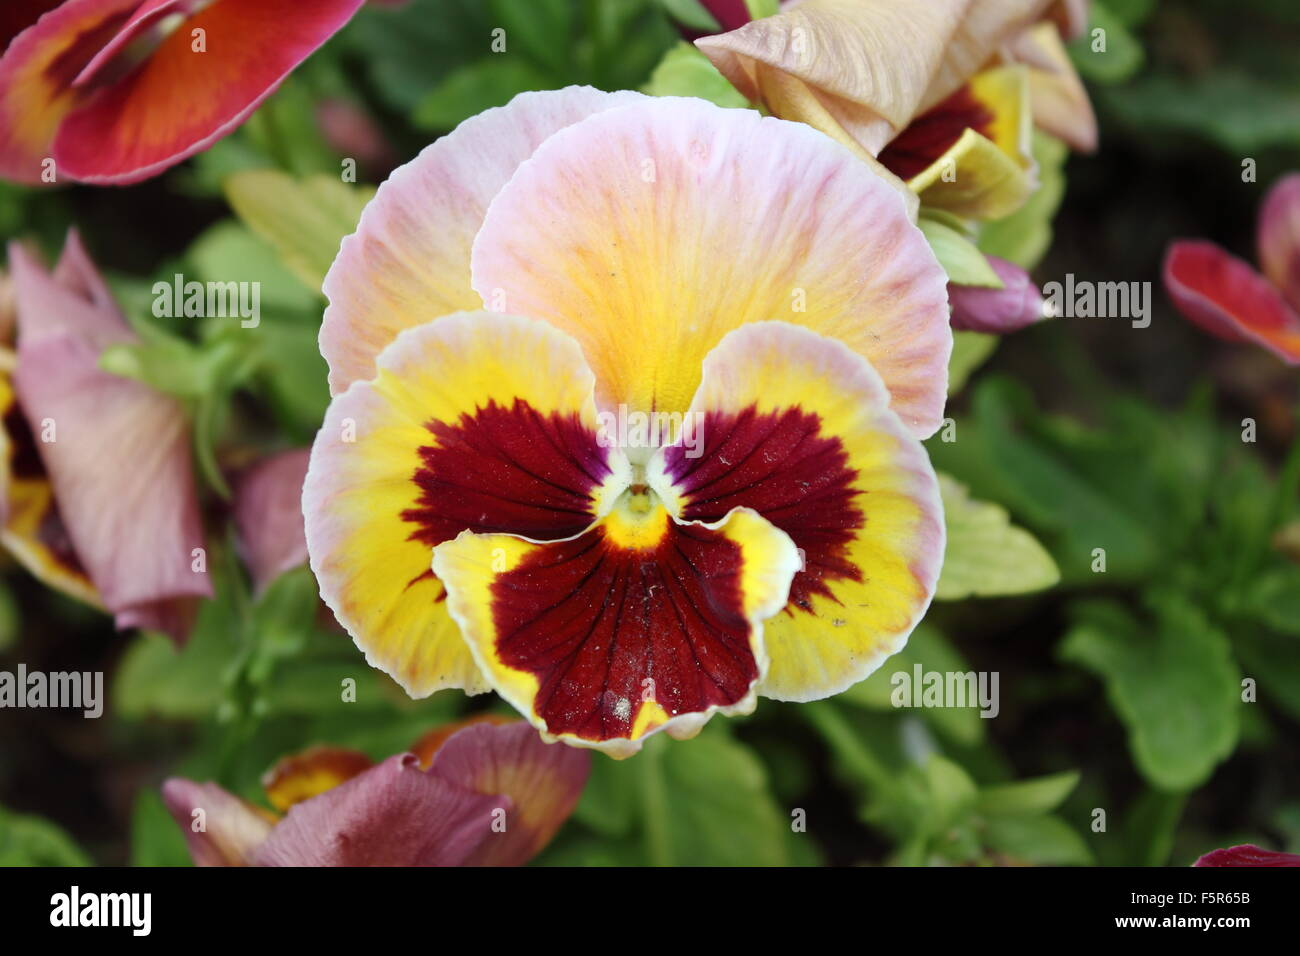 Closeup view of a beautiful white pansy flower (Viola Wittrockiana) - Stock Image